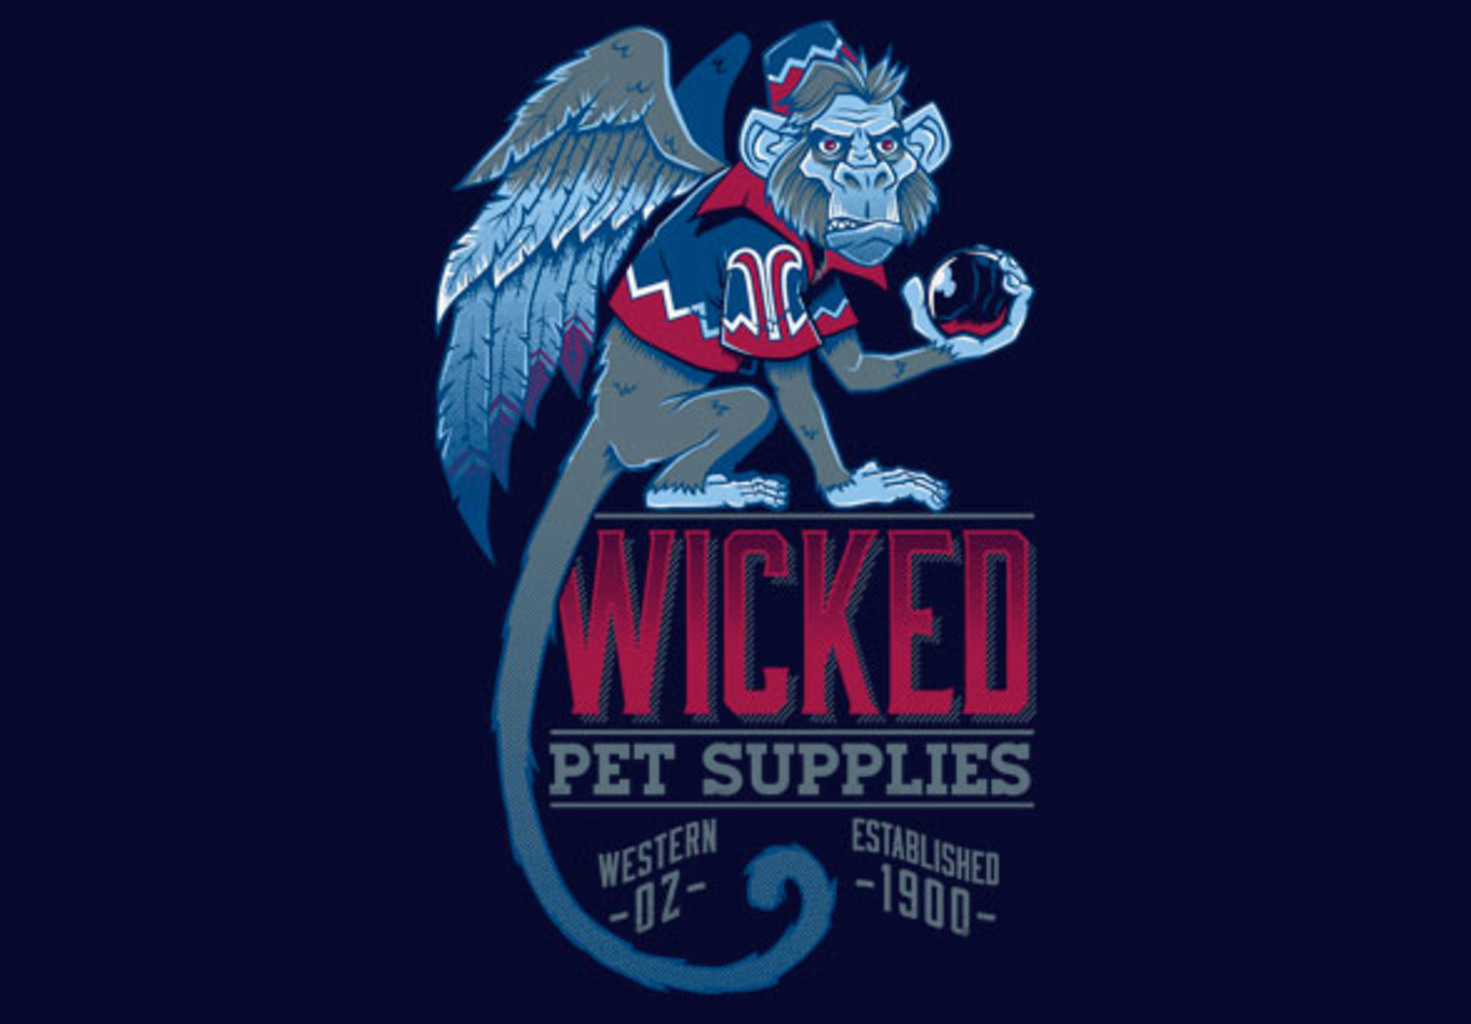 teeVillain: WICKED PET SUPPLIES